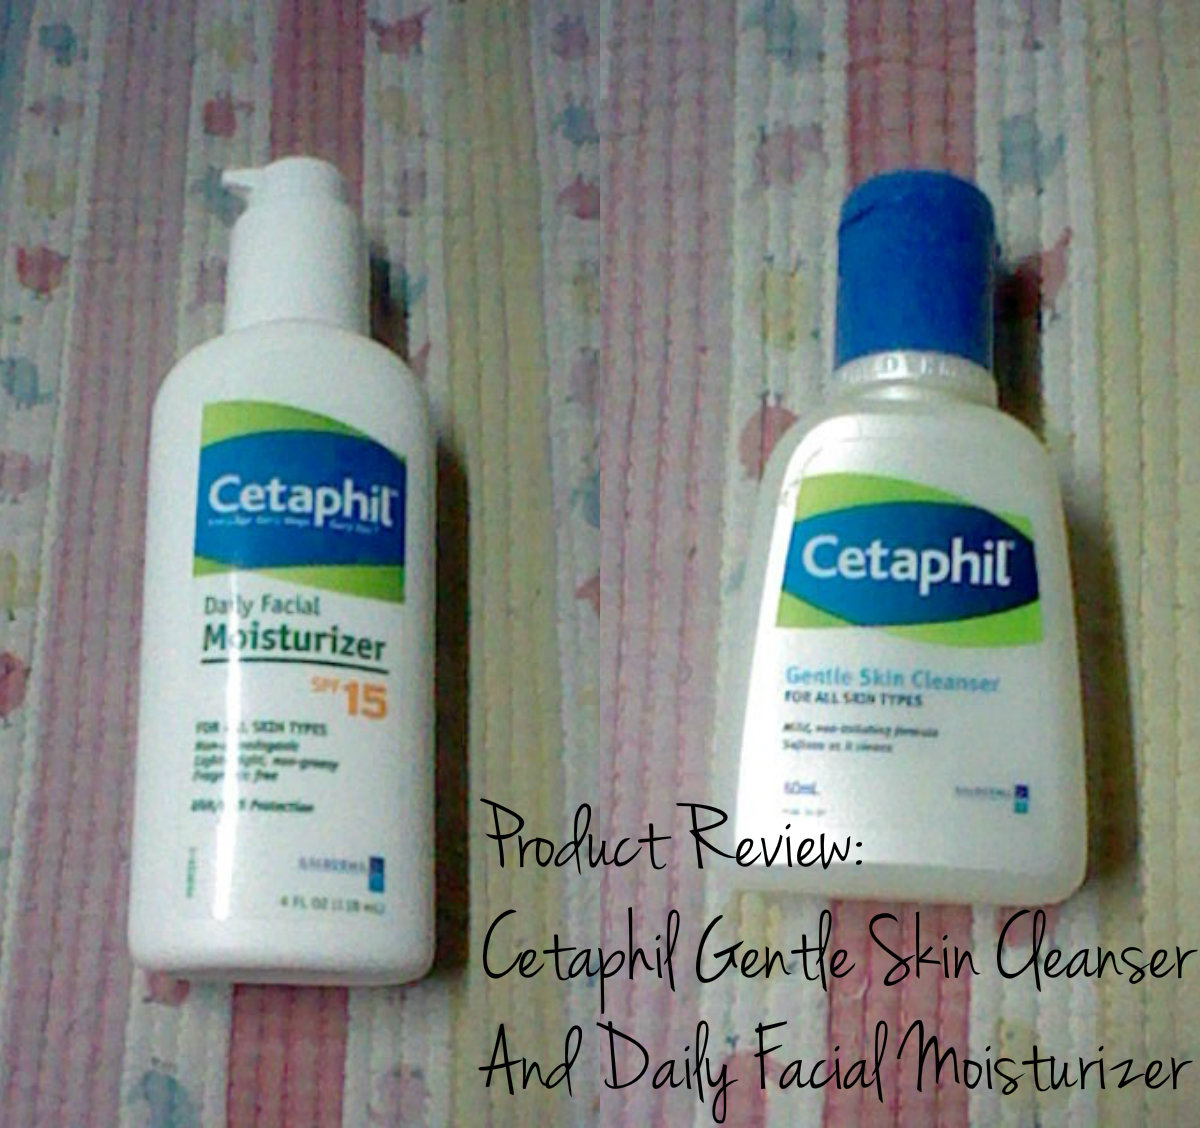 Daily Hydrating Lotion With Hyaluronic Acid by cetaphil #6